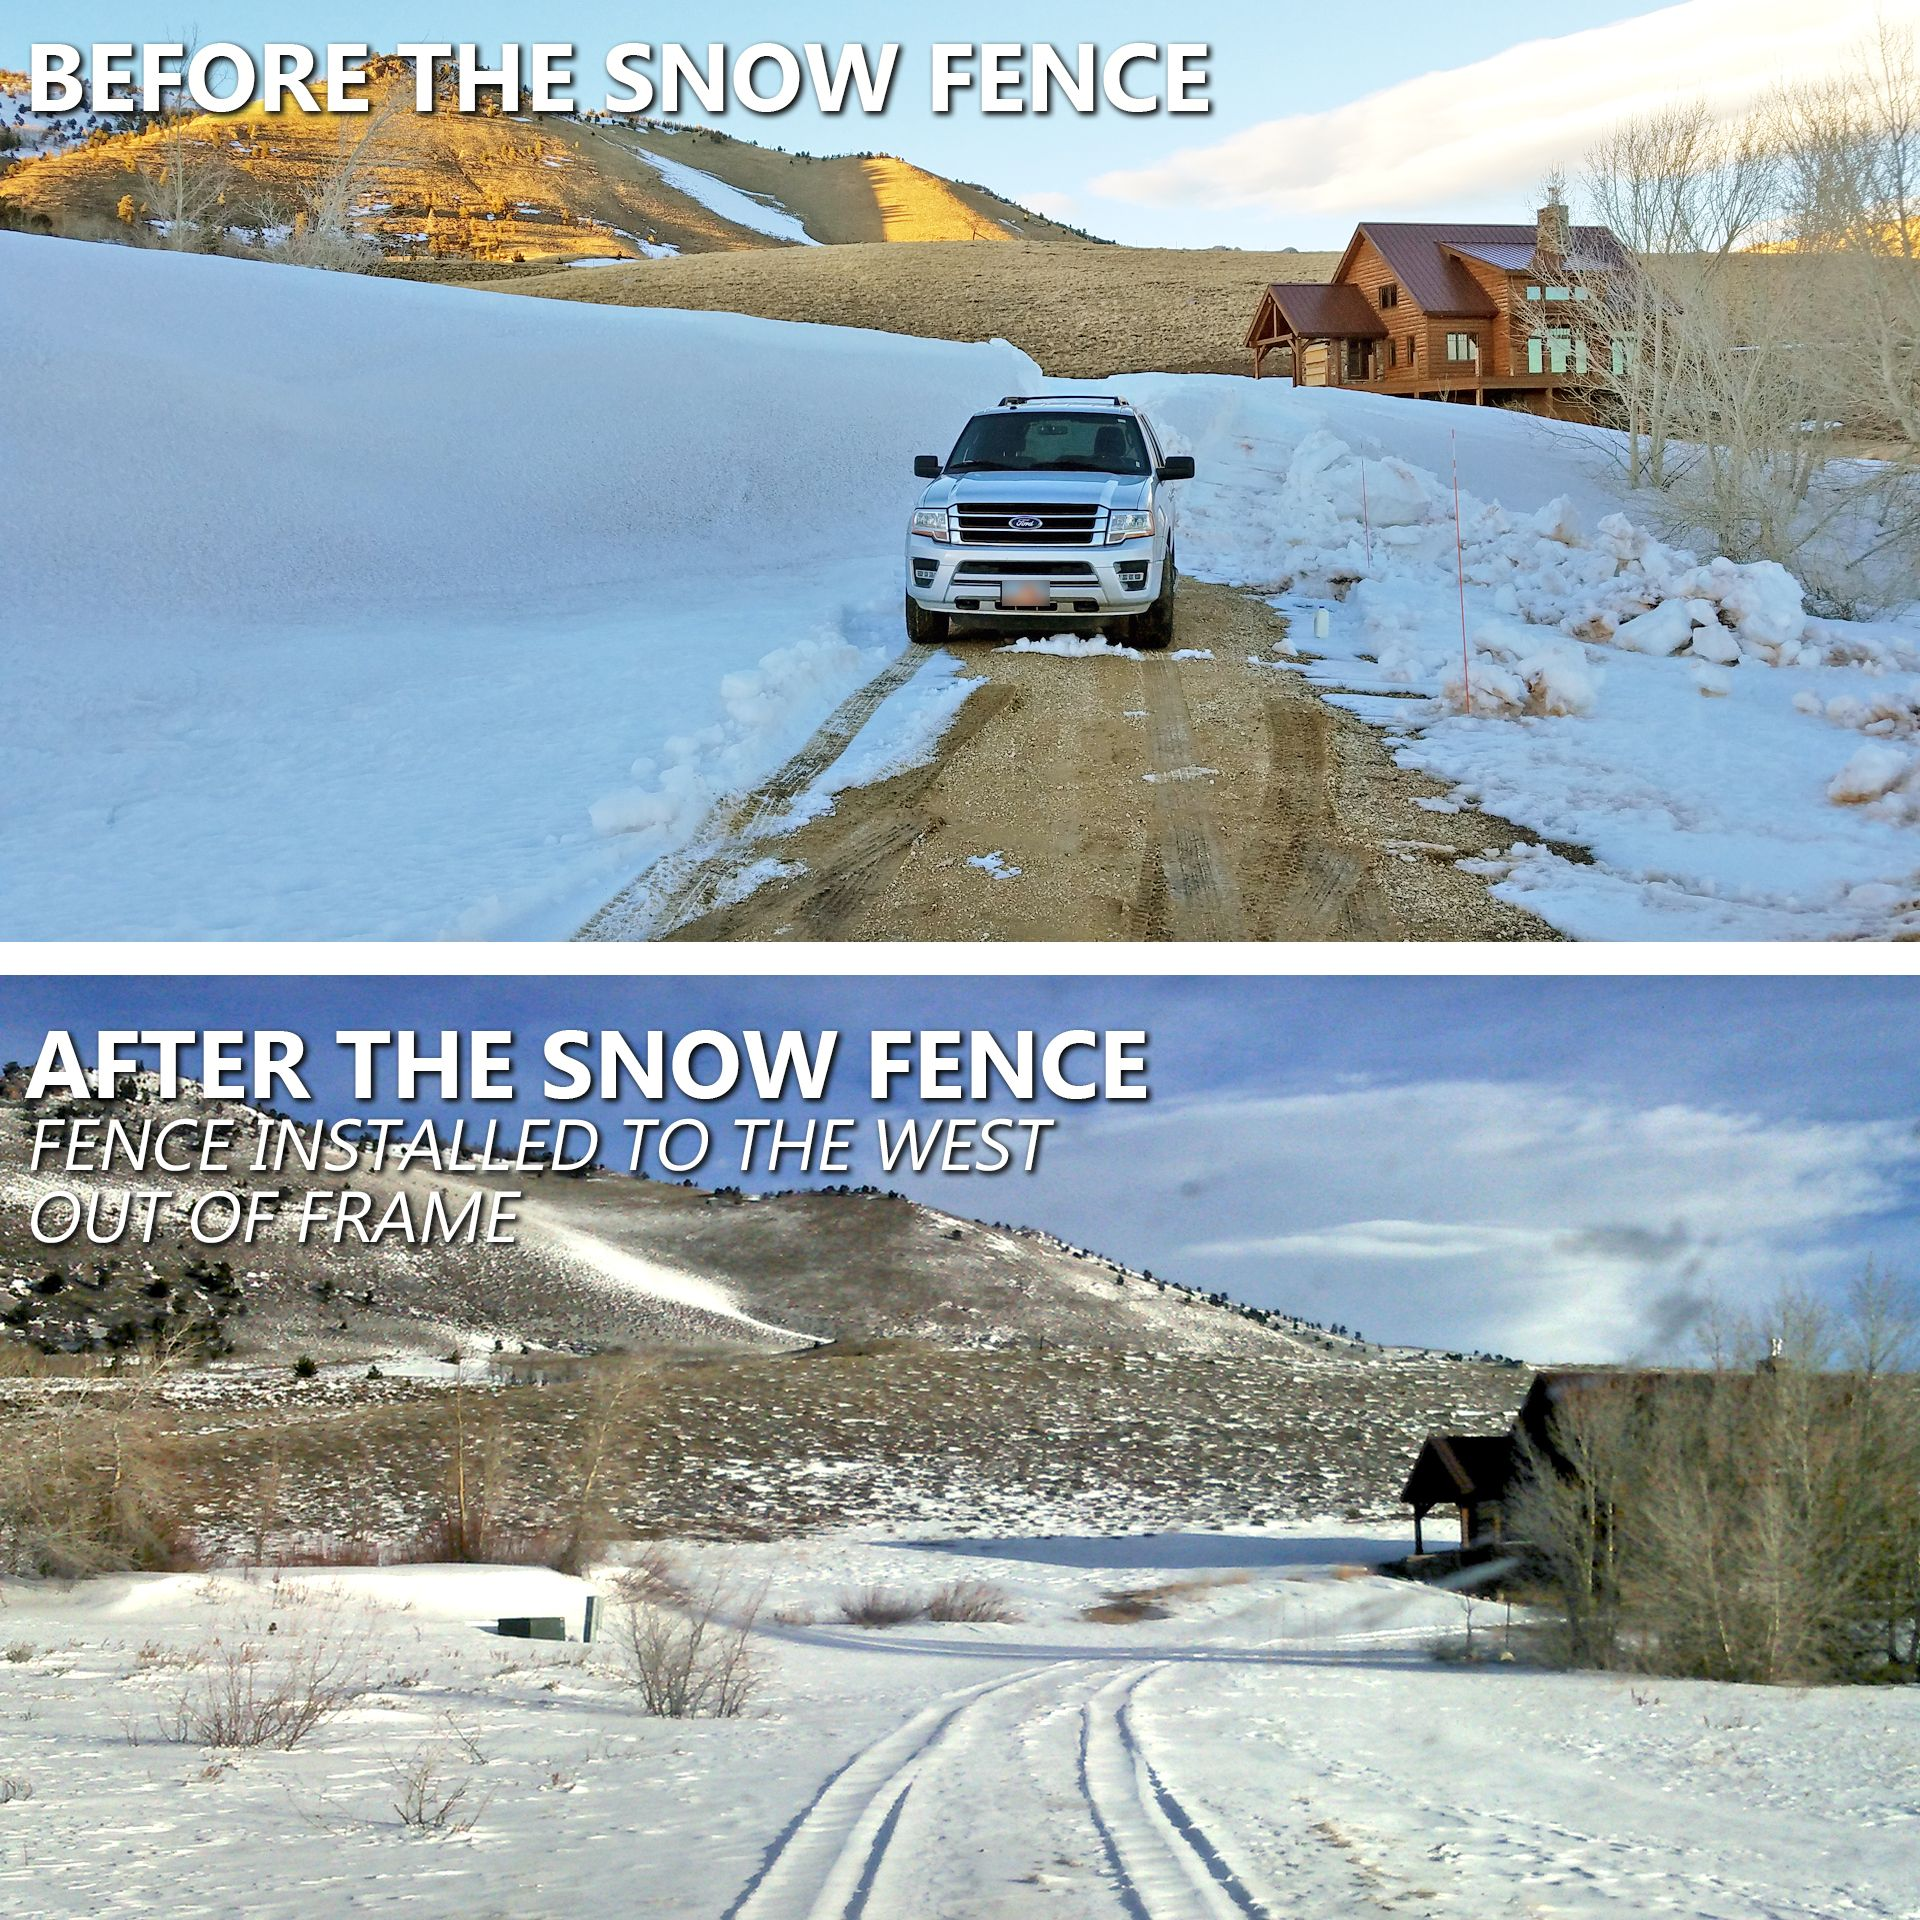 Centennial Woods Built Snow Fence For A Wyoming Landowner To Allow Them To Drive To Their Garage In The Winter Reclaimed Wood Siding Wood Siding Reclaimed Wood